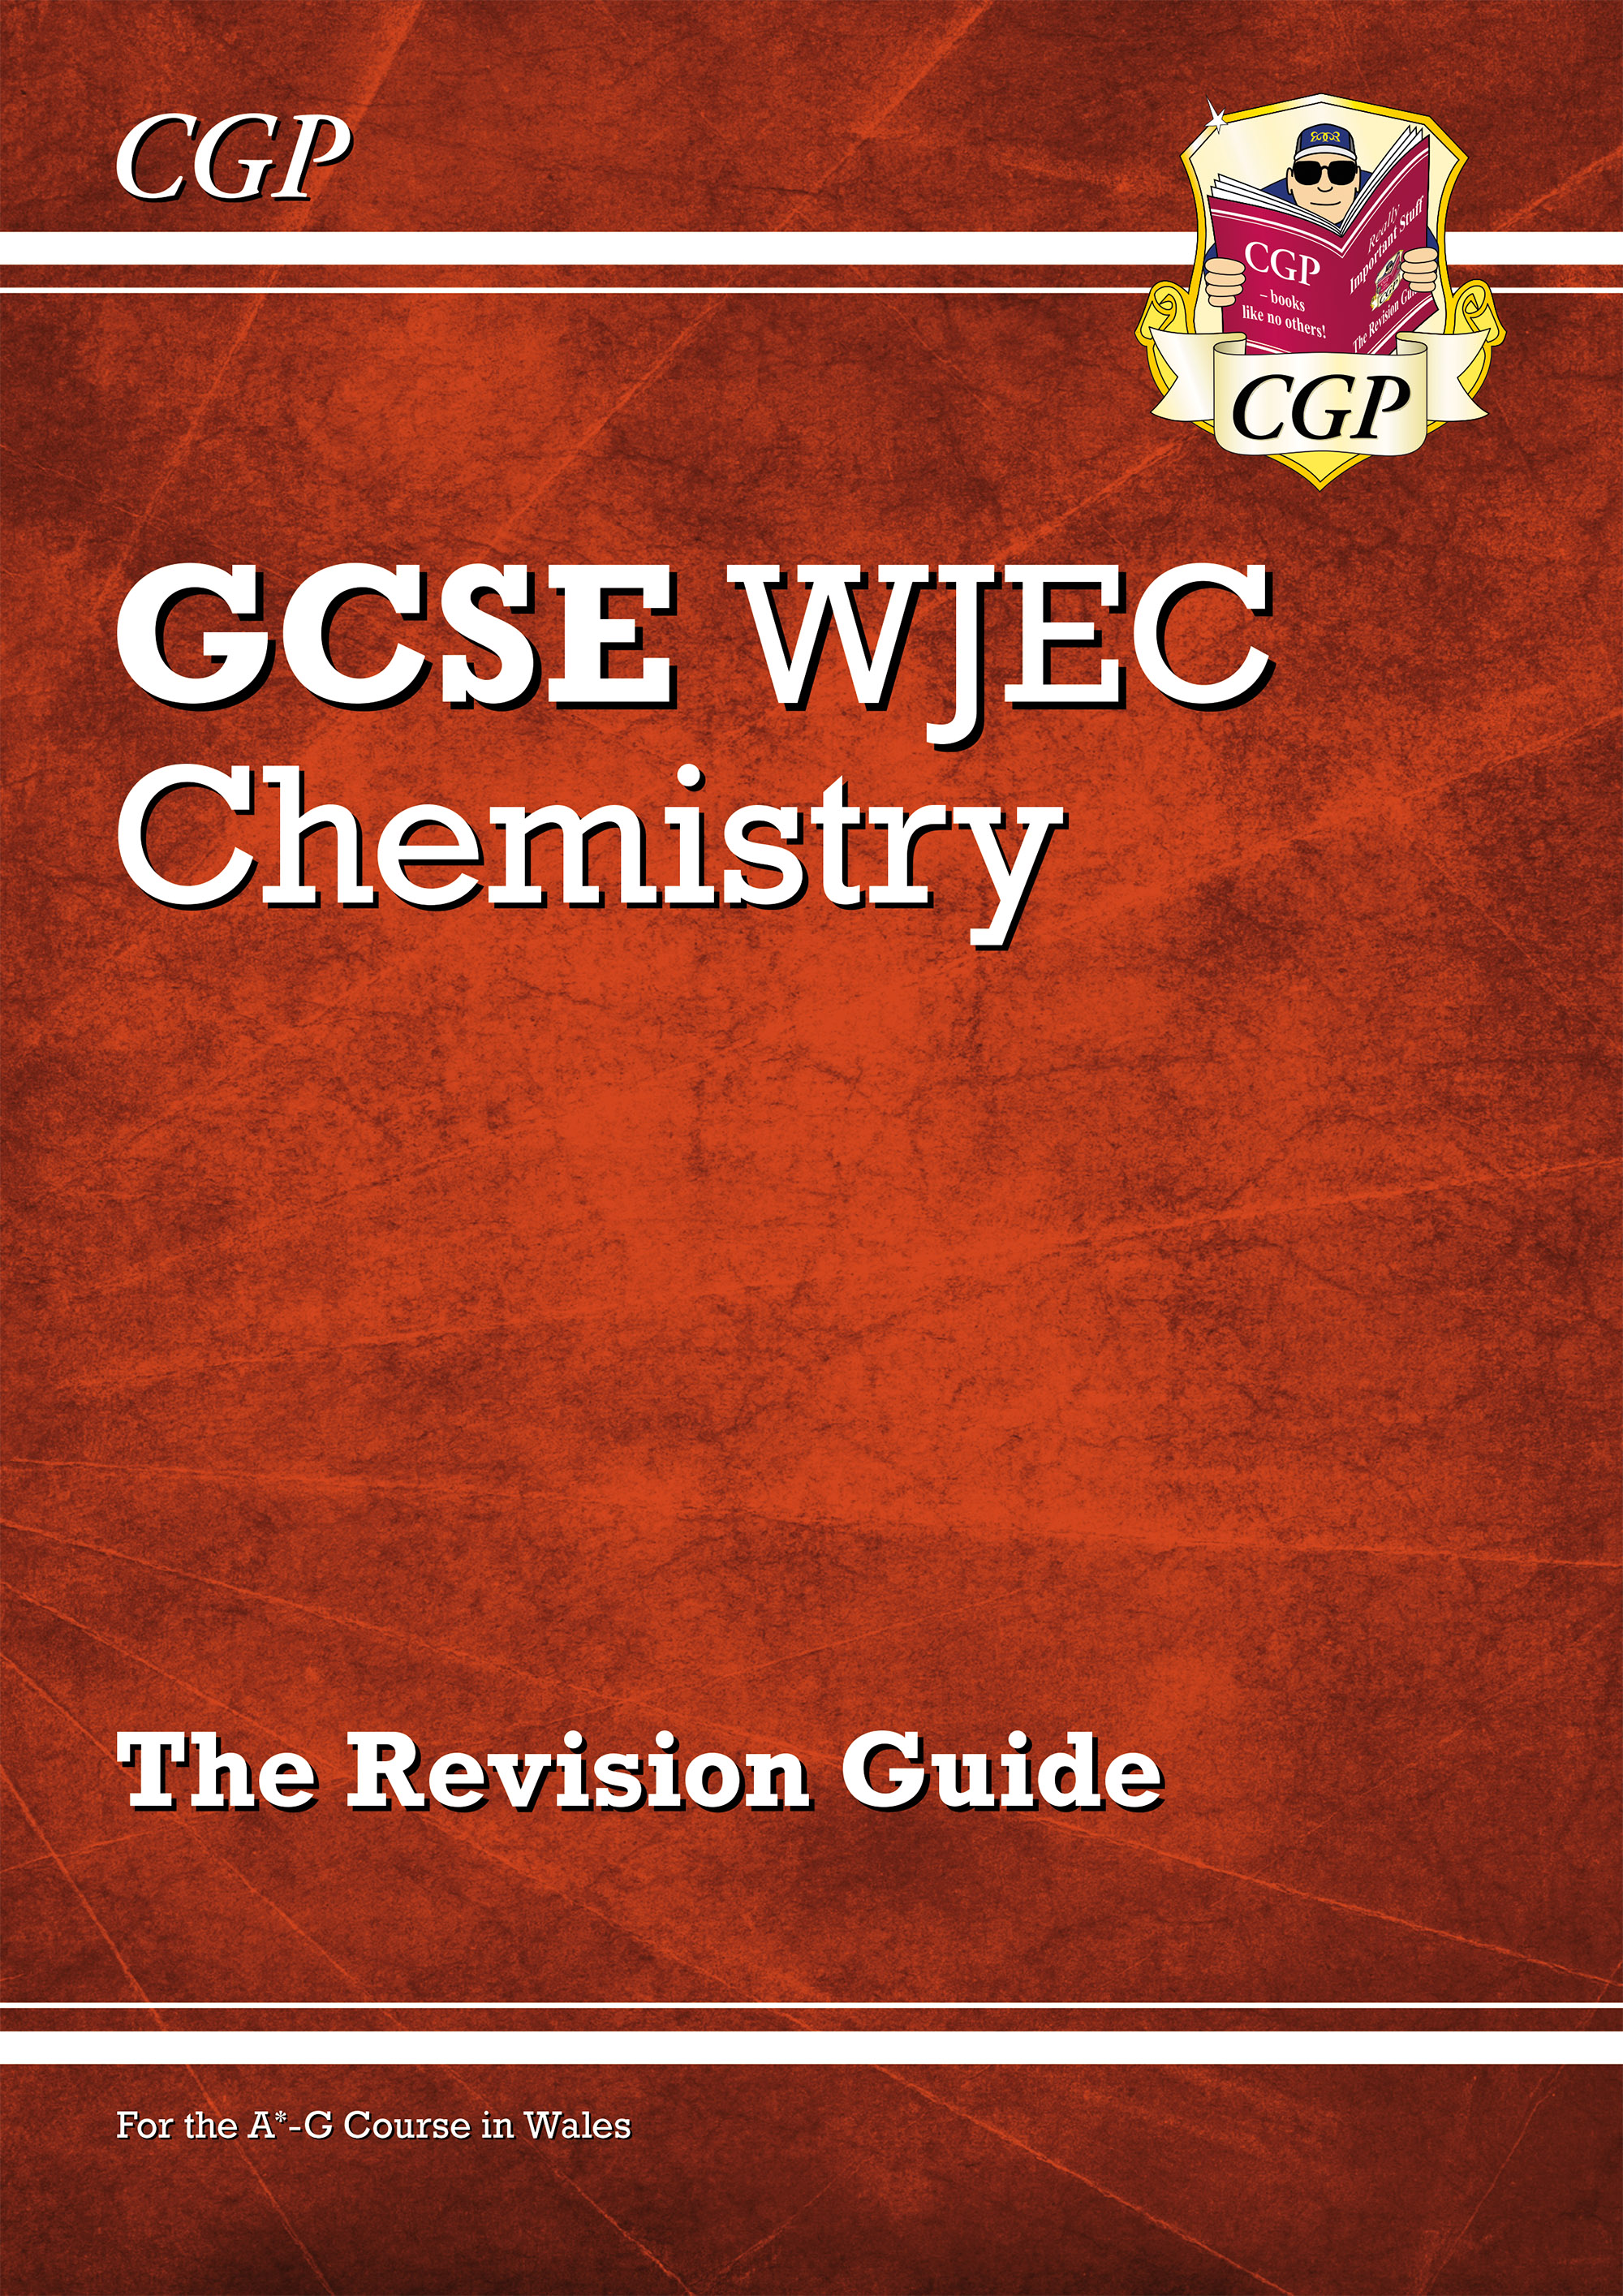 CWR41D - New WJEC GCSE Chemistry Revision Guide Online Edition